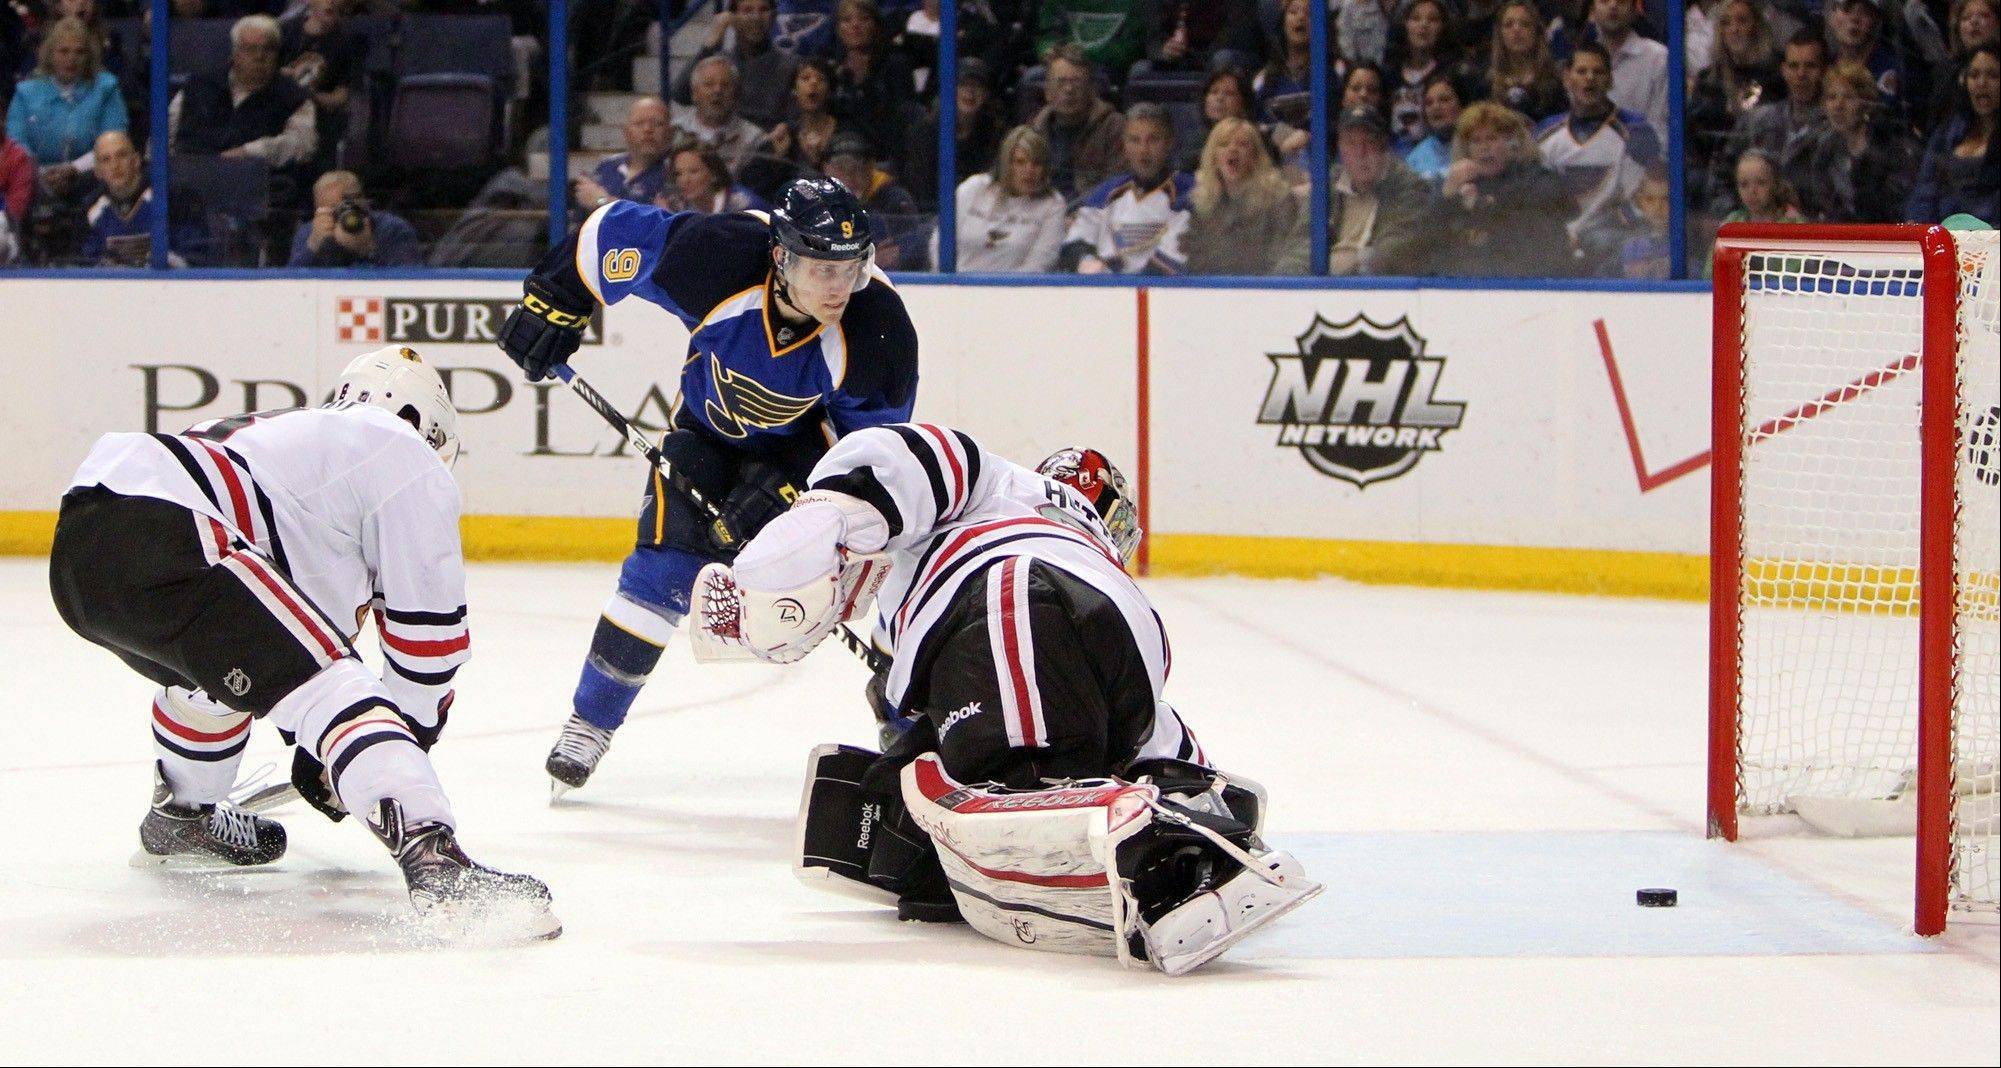 St. Louis Blues forward Jaden Schwartz scores past Chicago Blackhawks goaltender Carter Hutton in the first period of an NHL hockey game on Saturday, April 27, 2013, at the Scottrade Center in St. Louis. (AP Photo/St. Louis Post-Dispatch, Chris Lee)